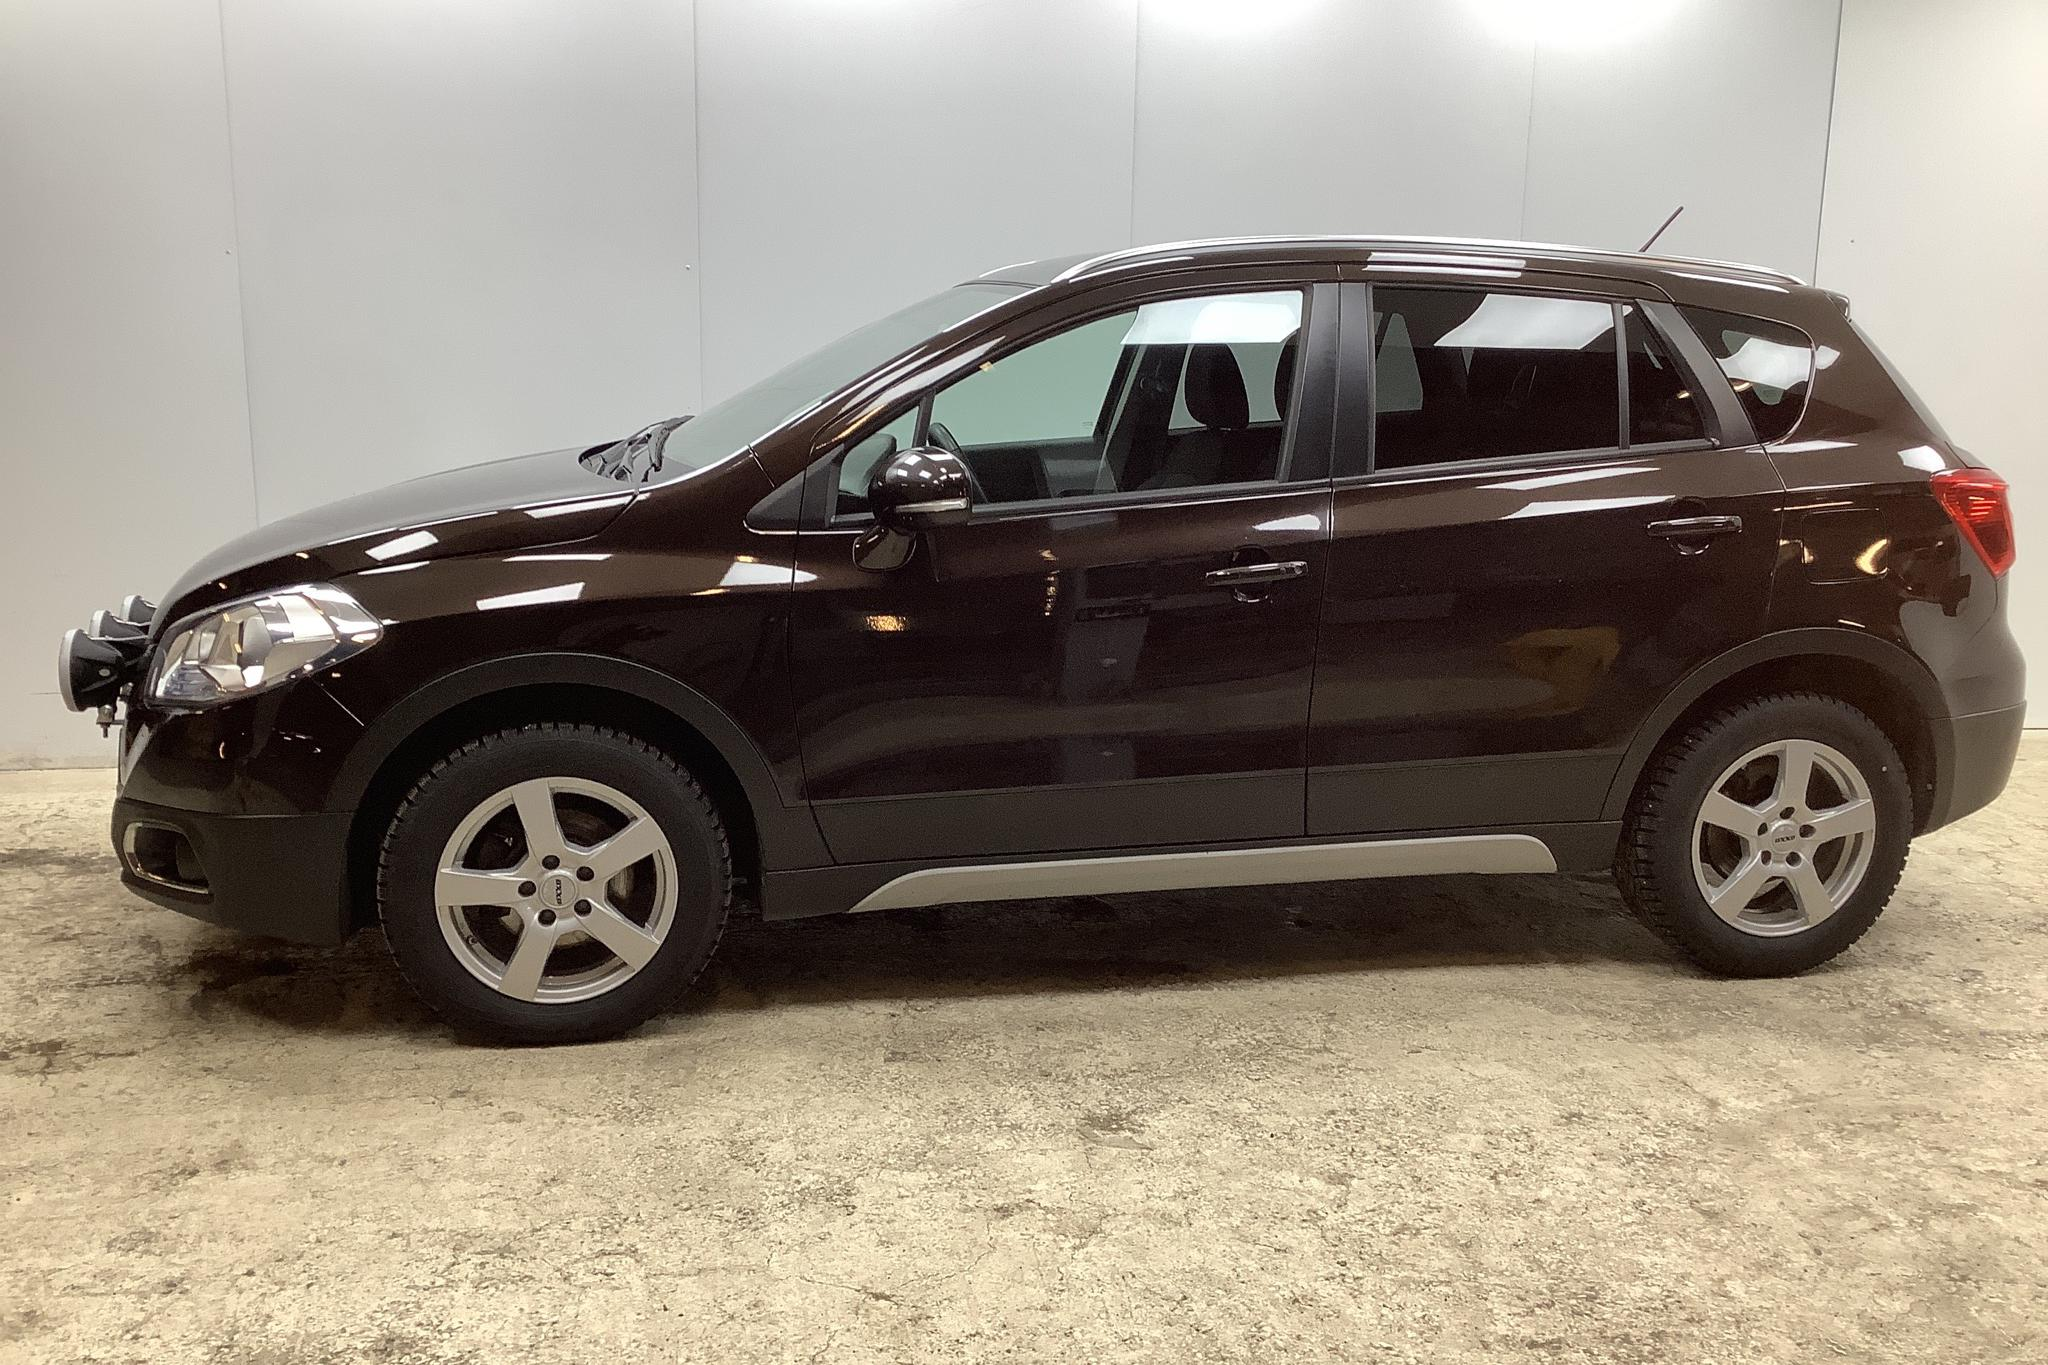 Suzuki S-Cross 1.6D 4x4 (120hk) - 51 570 km - Manual - brown - 2014